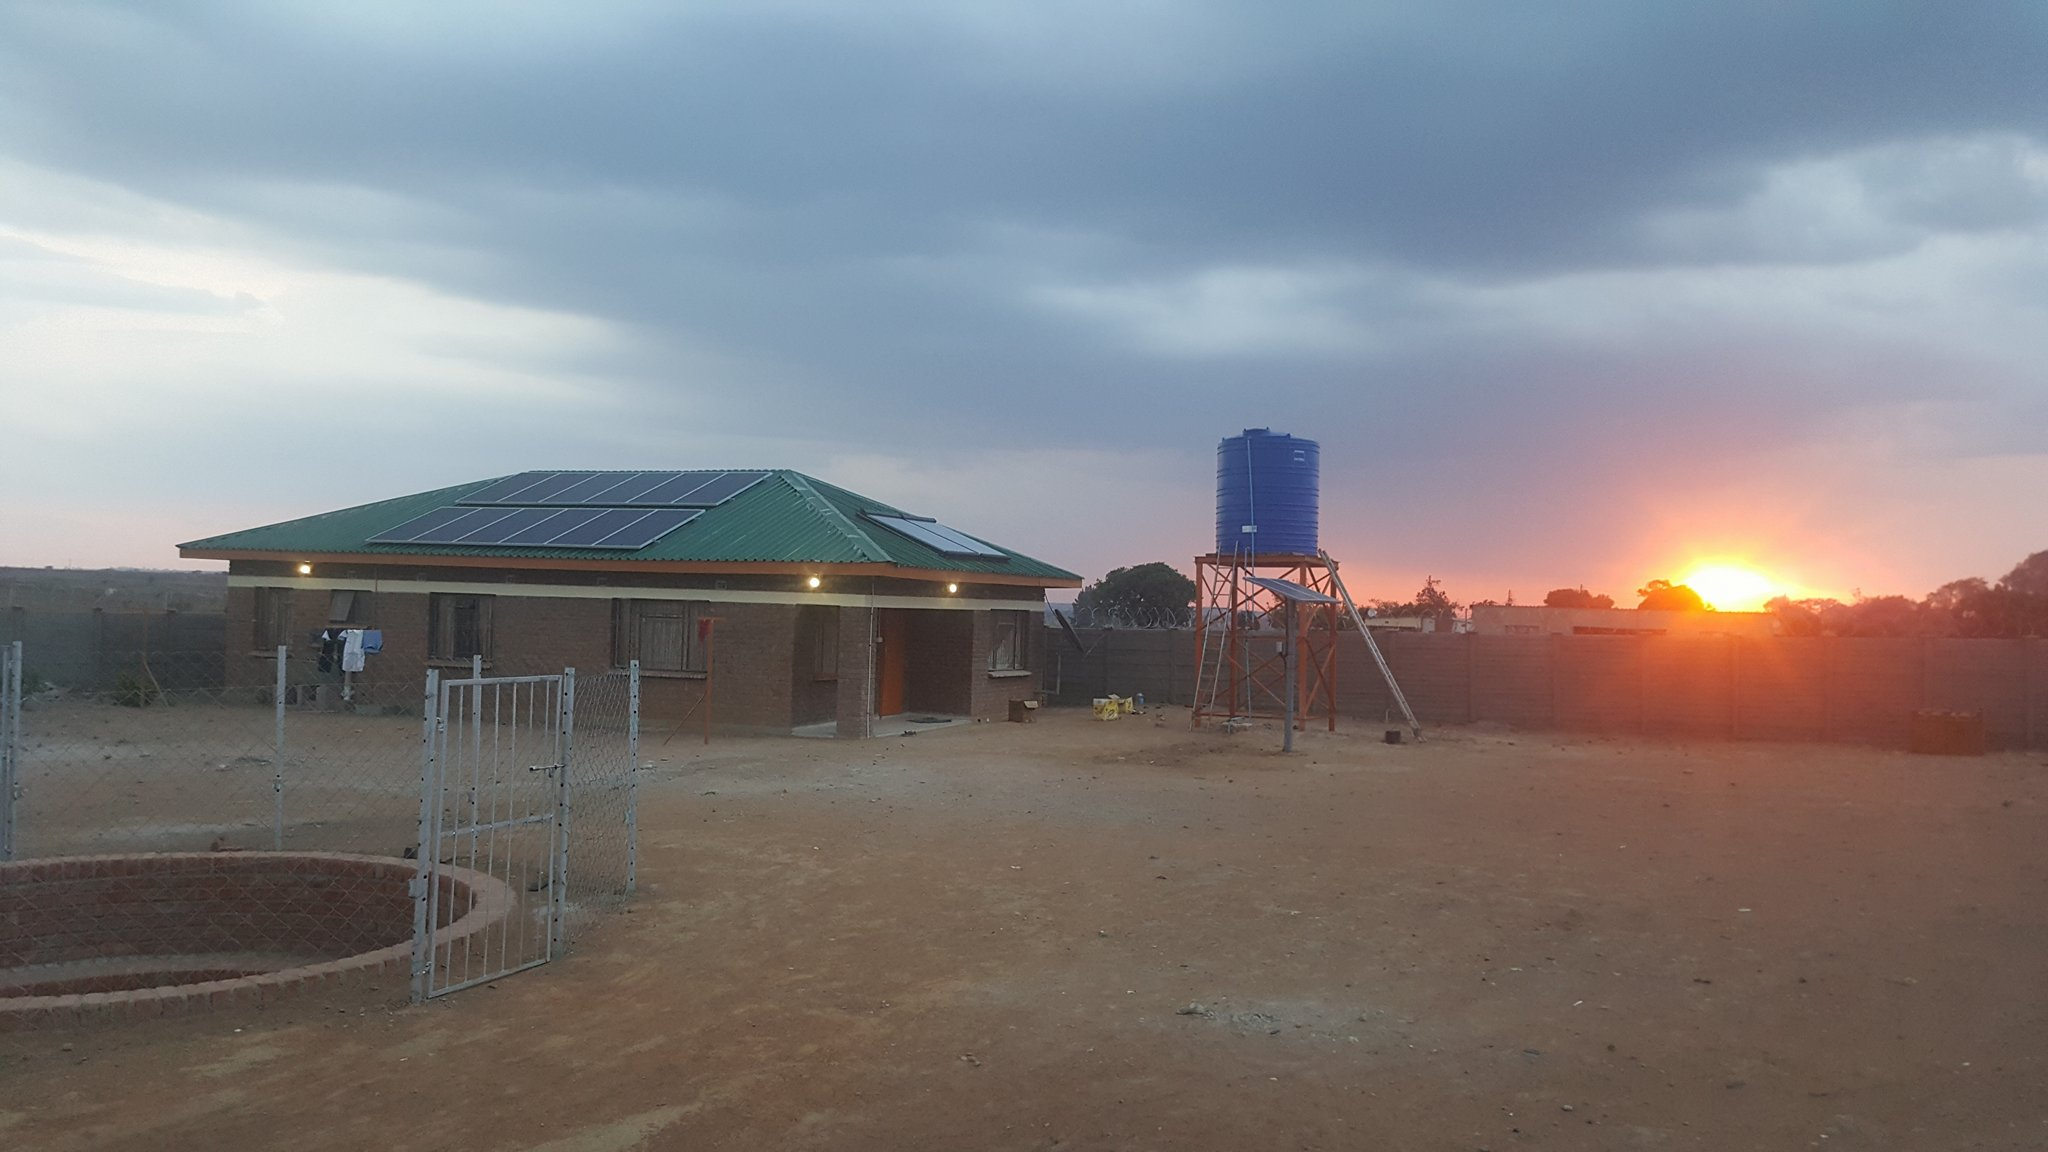 In October 2016 the engineers Joar Larsen and Mathias Espeland from Engineers Without Boarders Norway went down to Zimbabwe to install a solar geyser at the orphanage. Their mission was successfully accomplished, and you can read their final report  here .